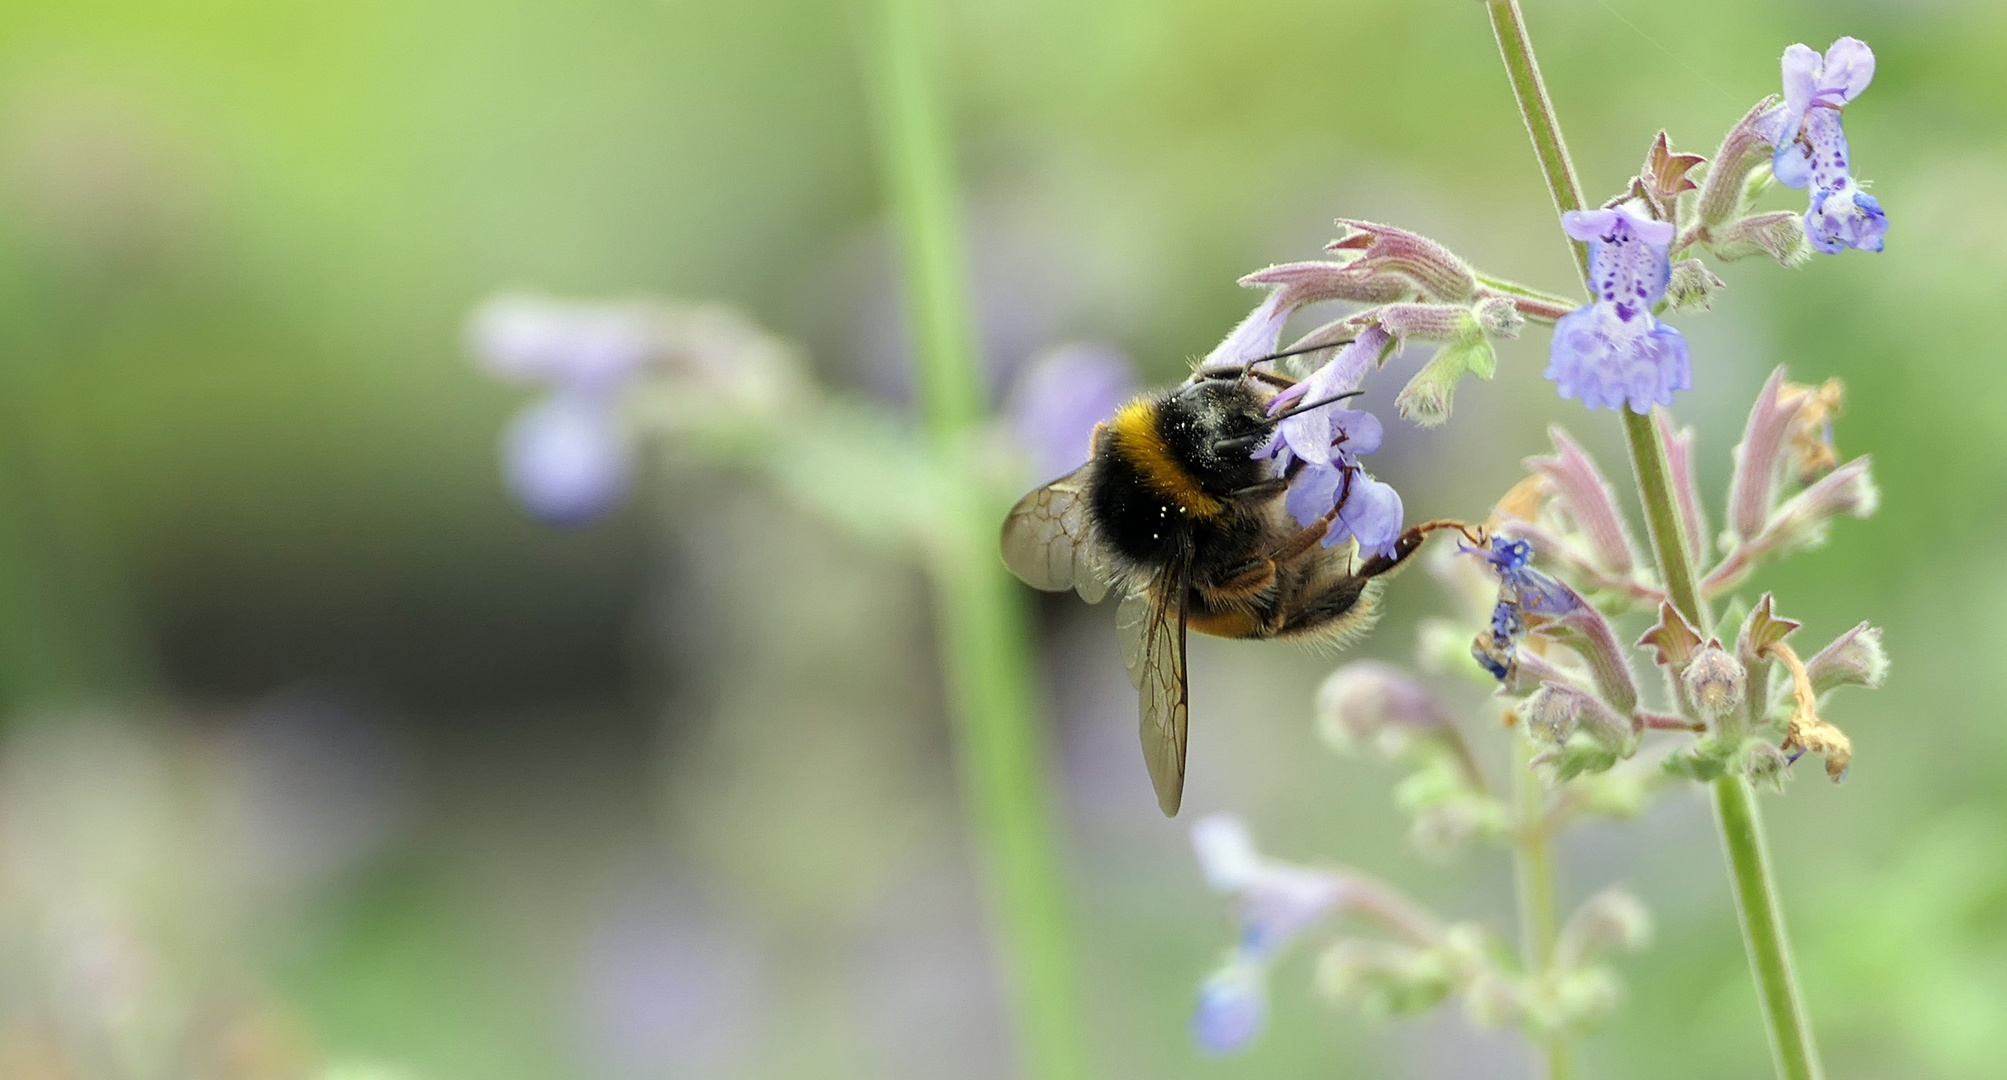 ... weighty bumblebee on a small flower